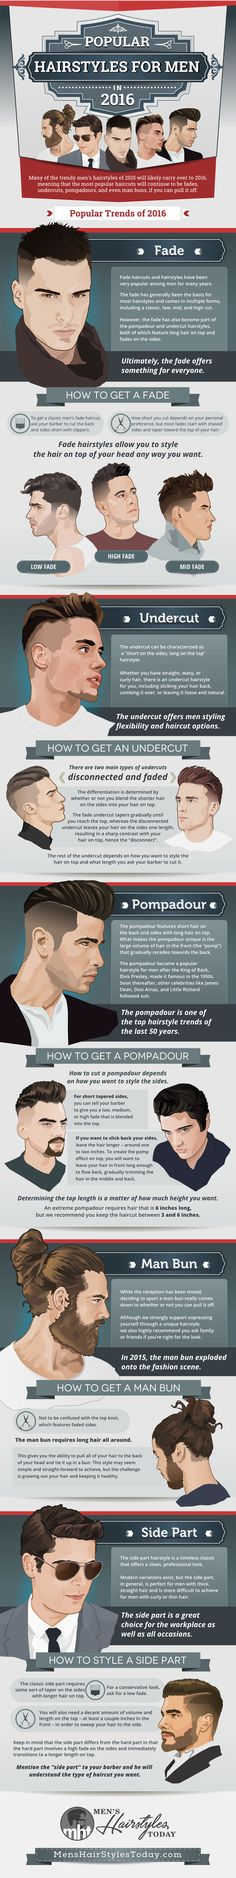 Men's Popular Hairstyles For 2016